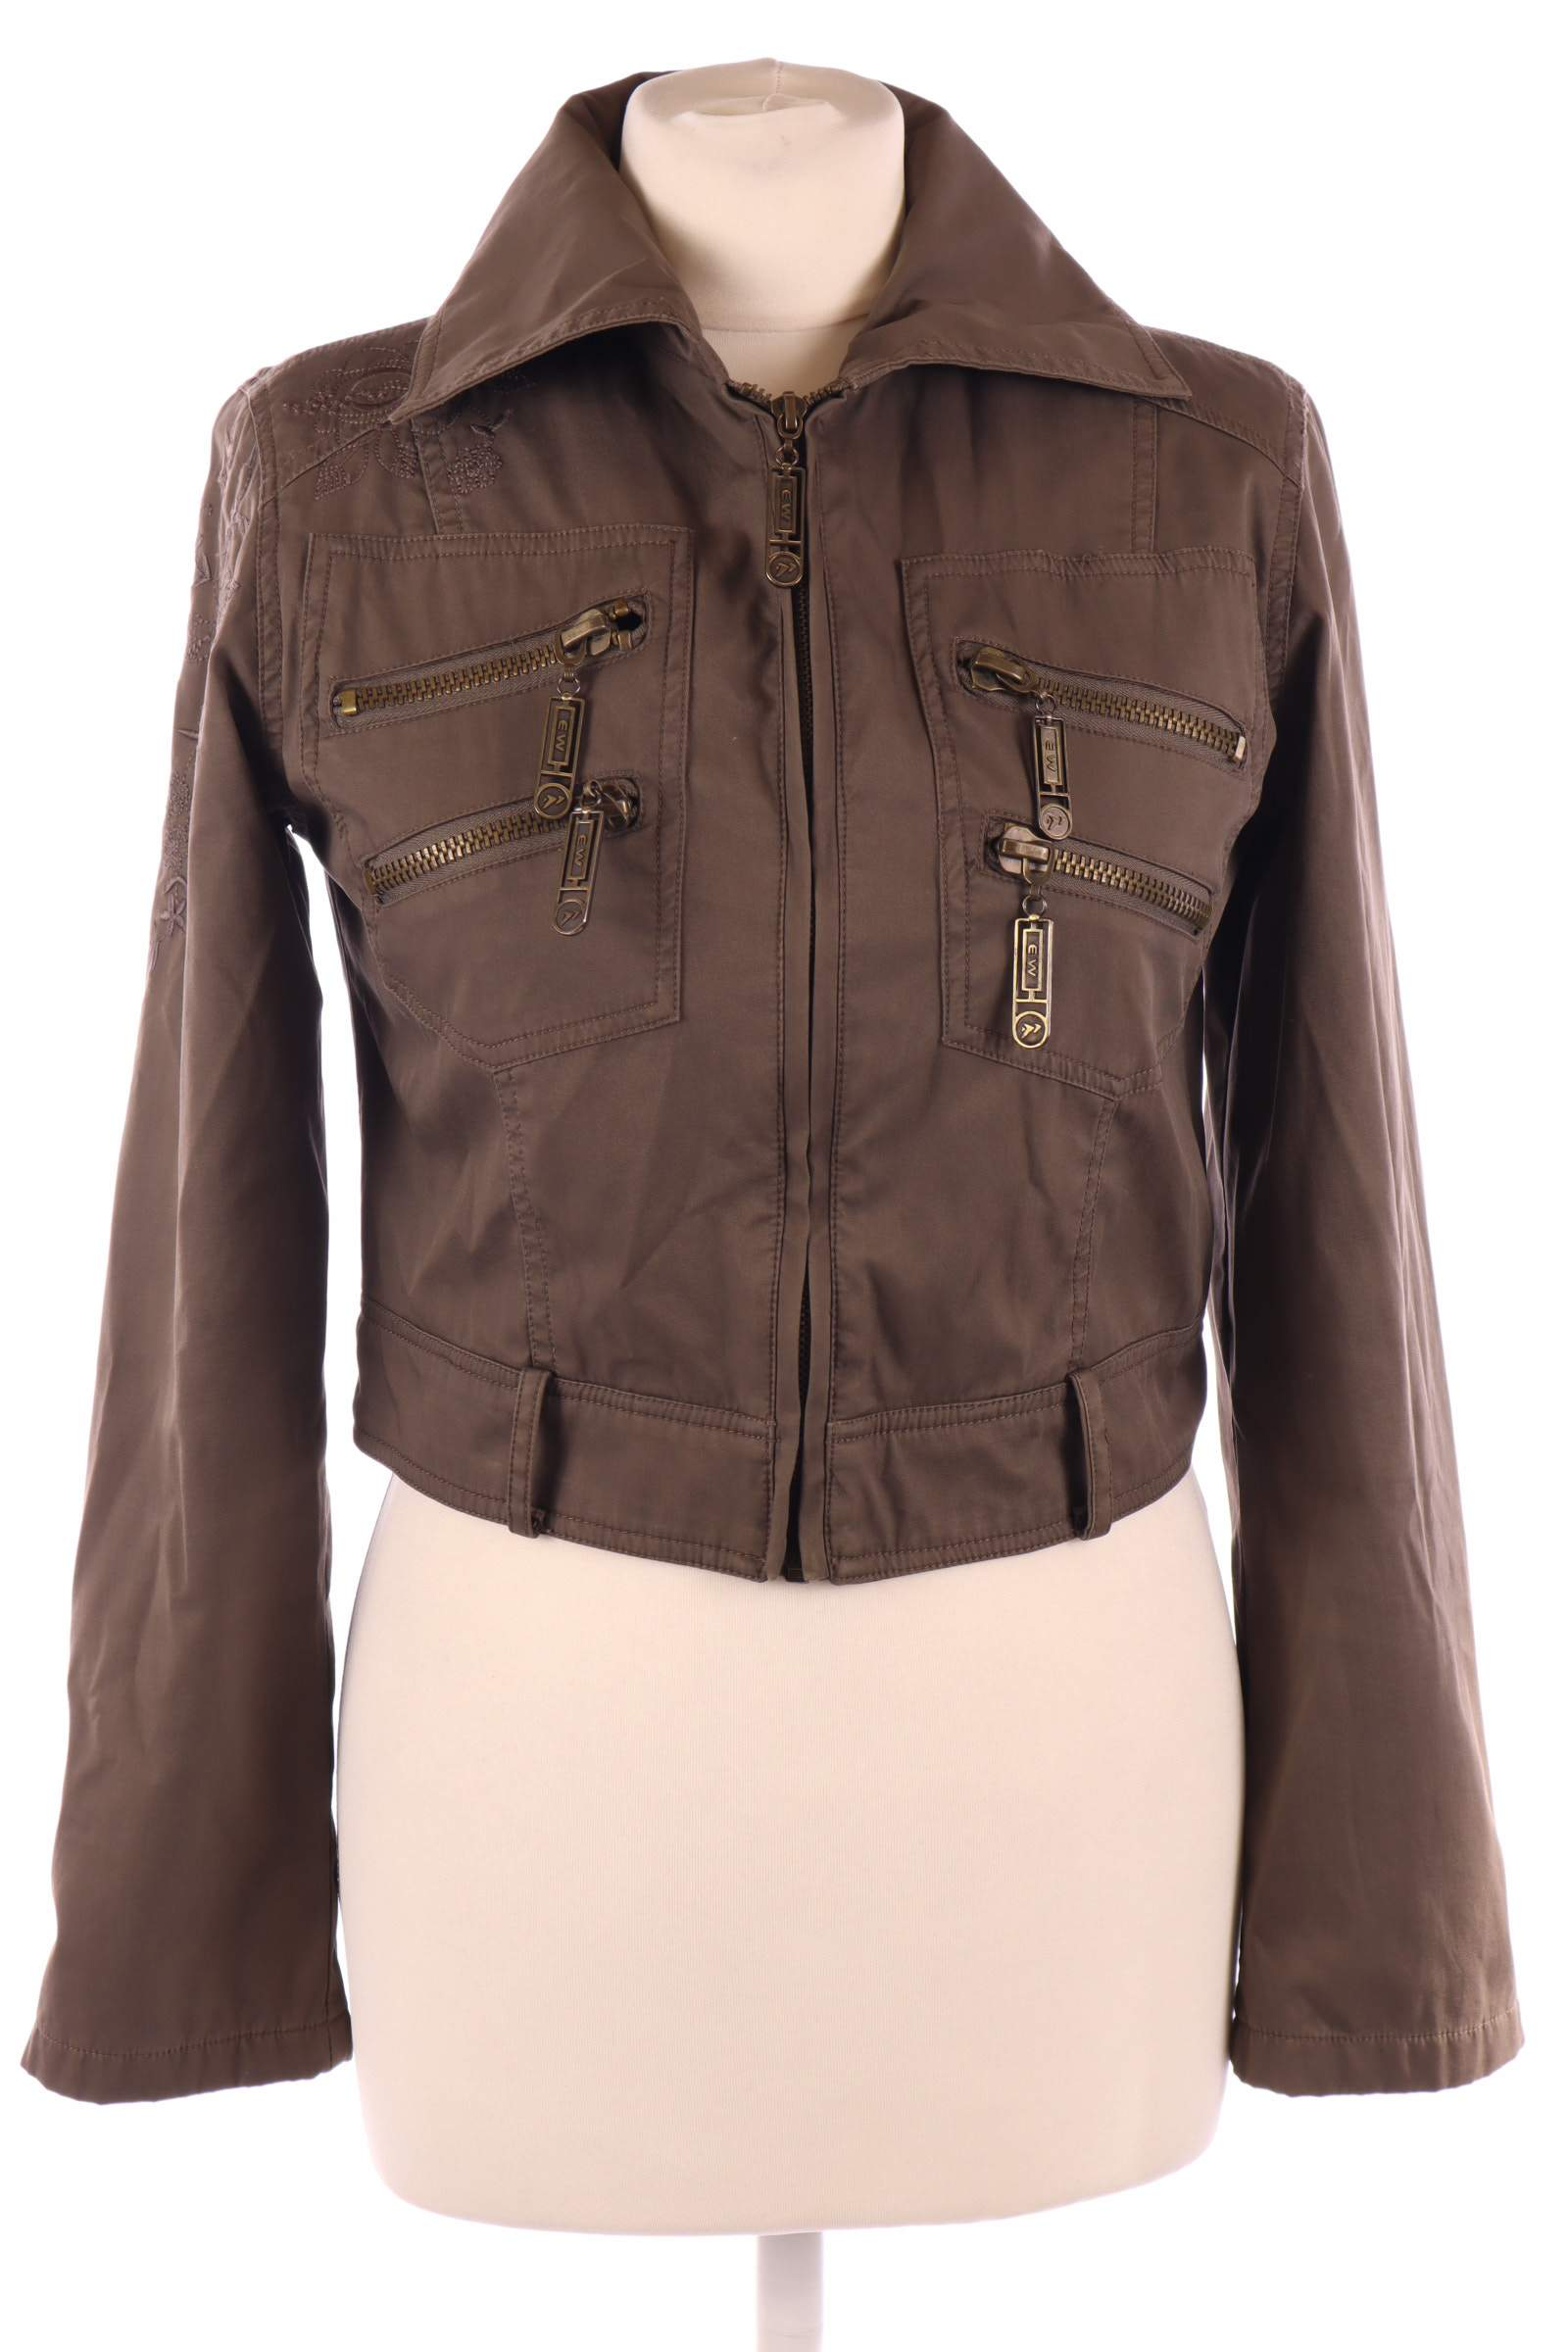 top fashion Brown Coat - upty.store